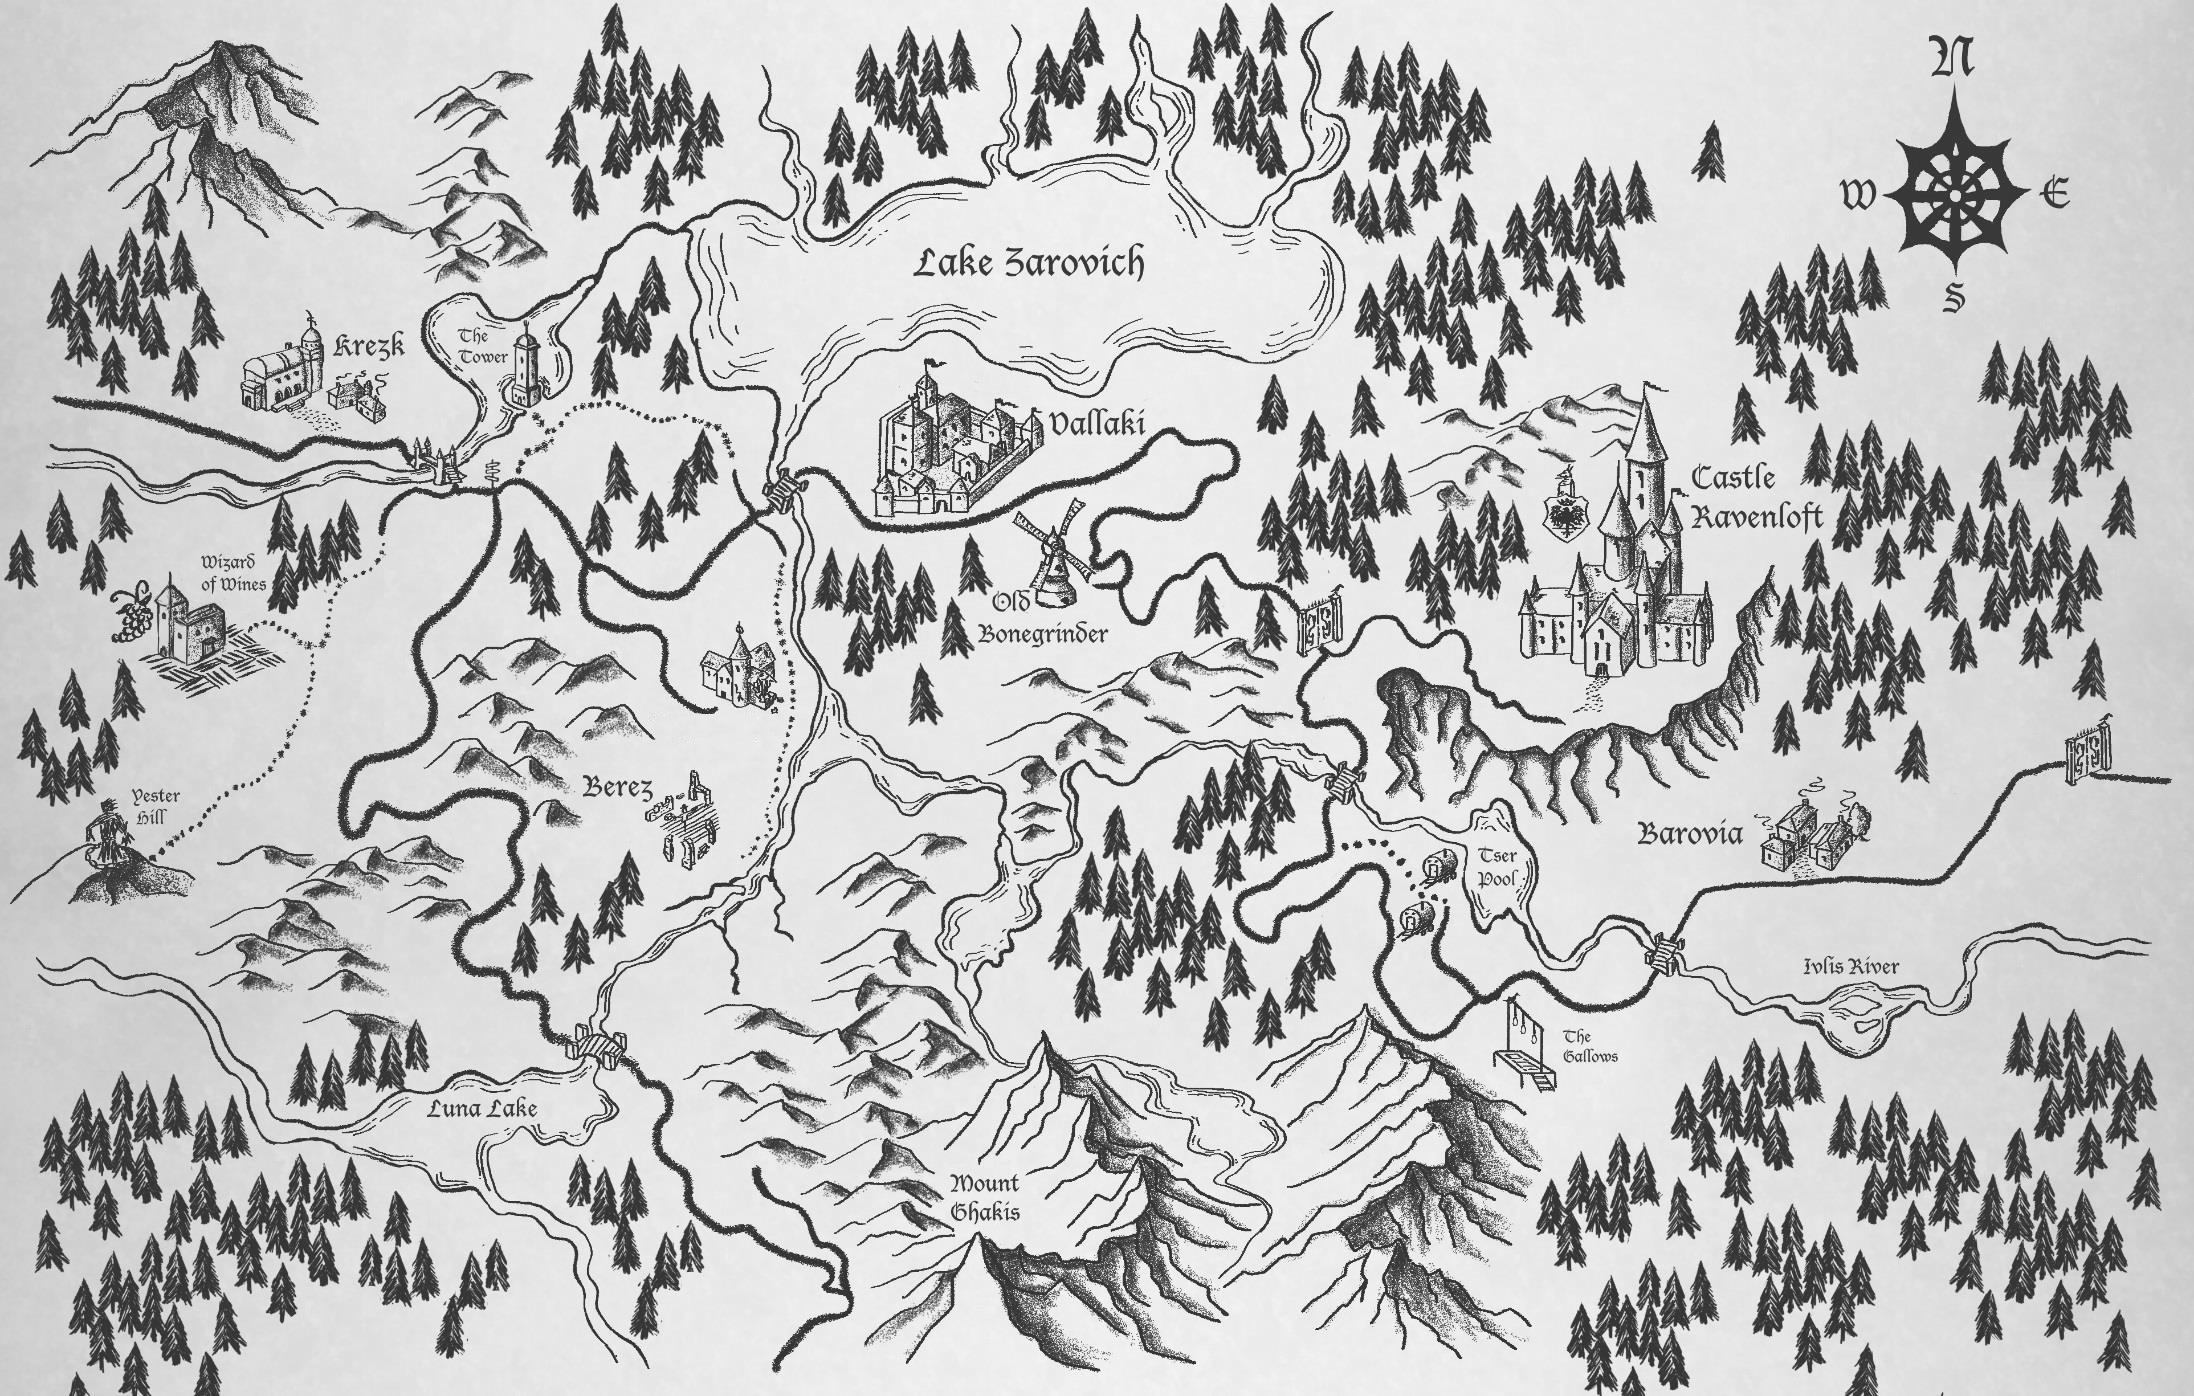 Barovia_Hand_Drawn_Maps.png